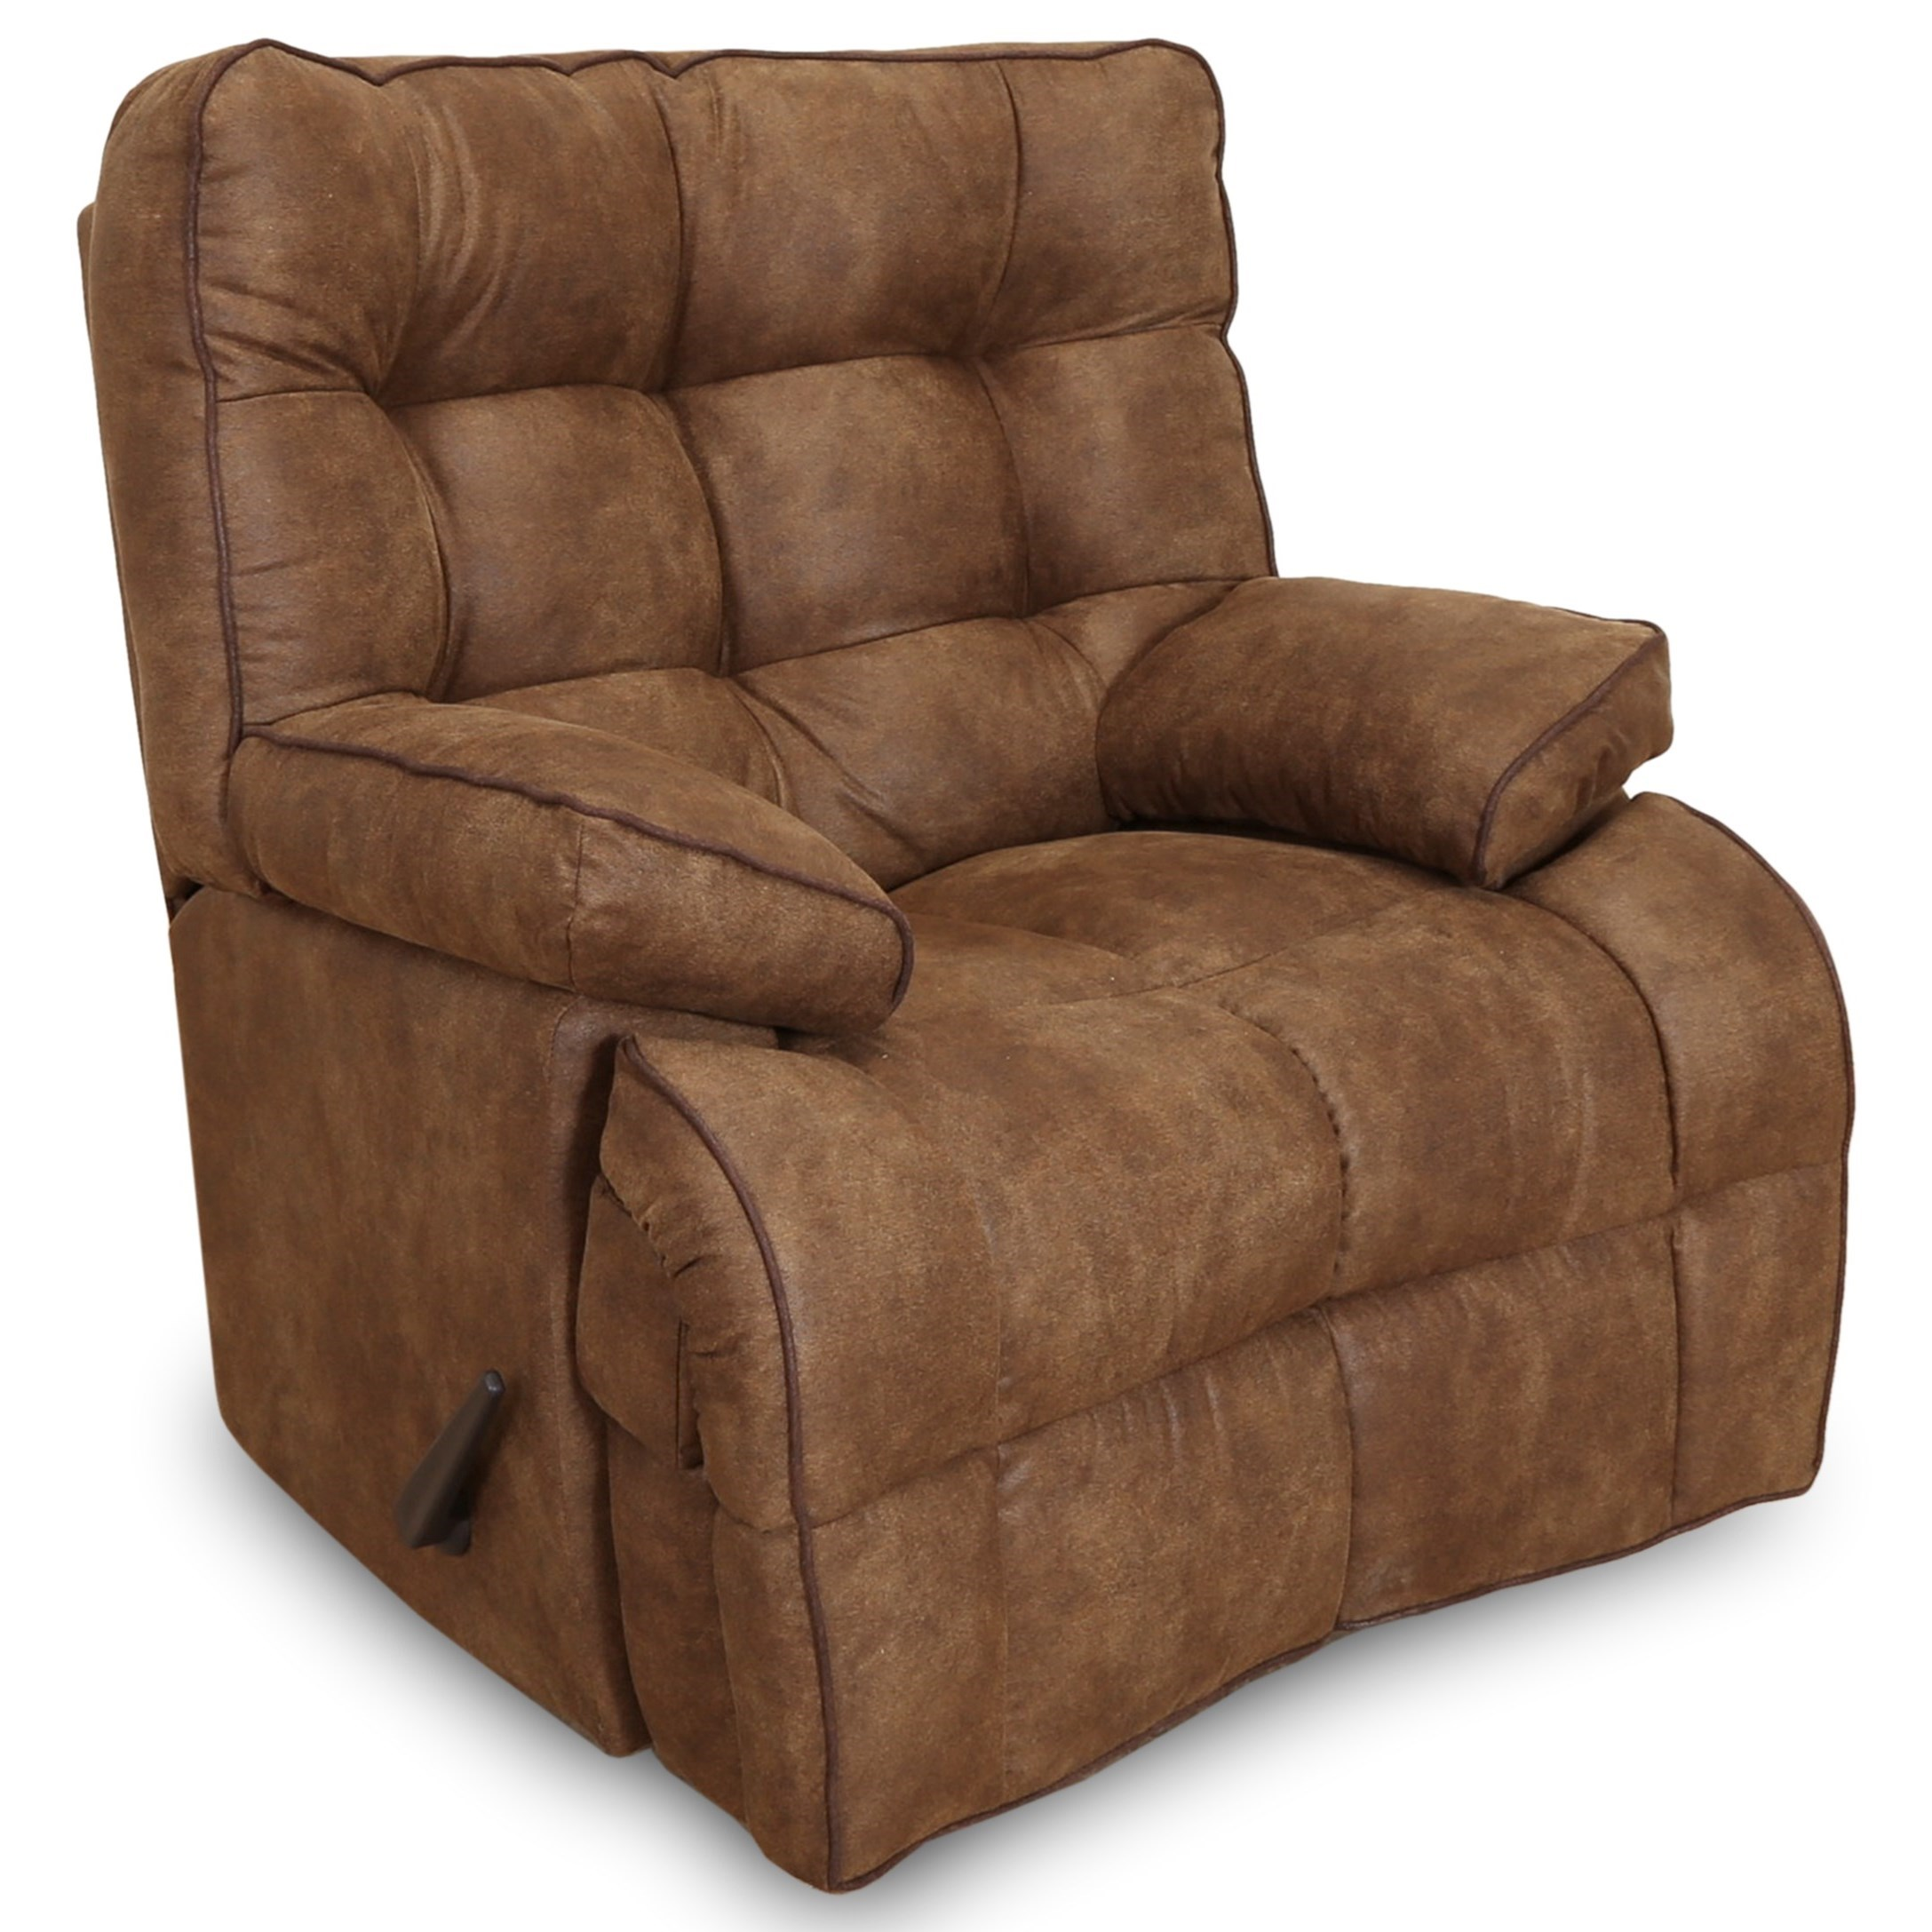 Venture Power Lay Flat Recliner with USB Port by Franklin at Rooms for Less